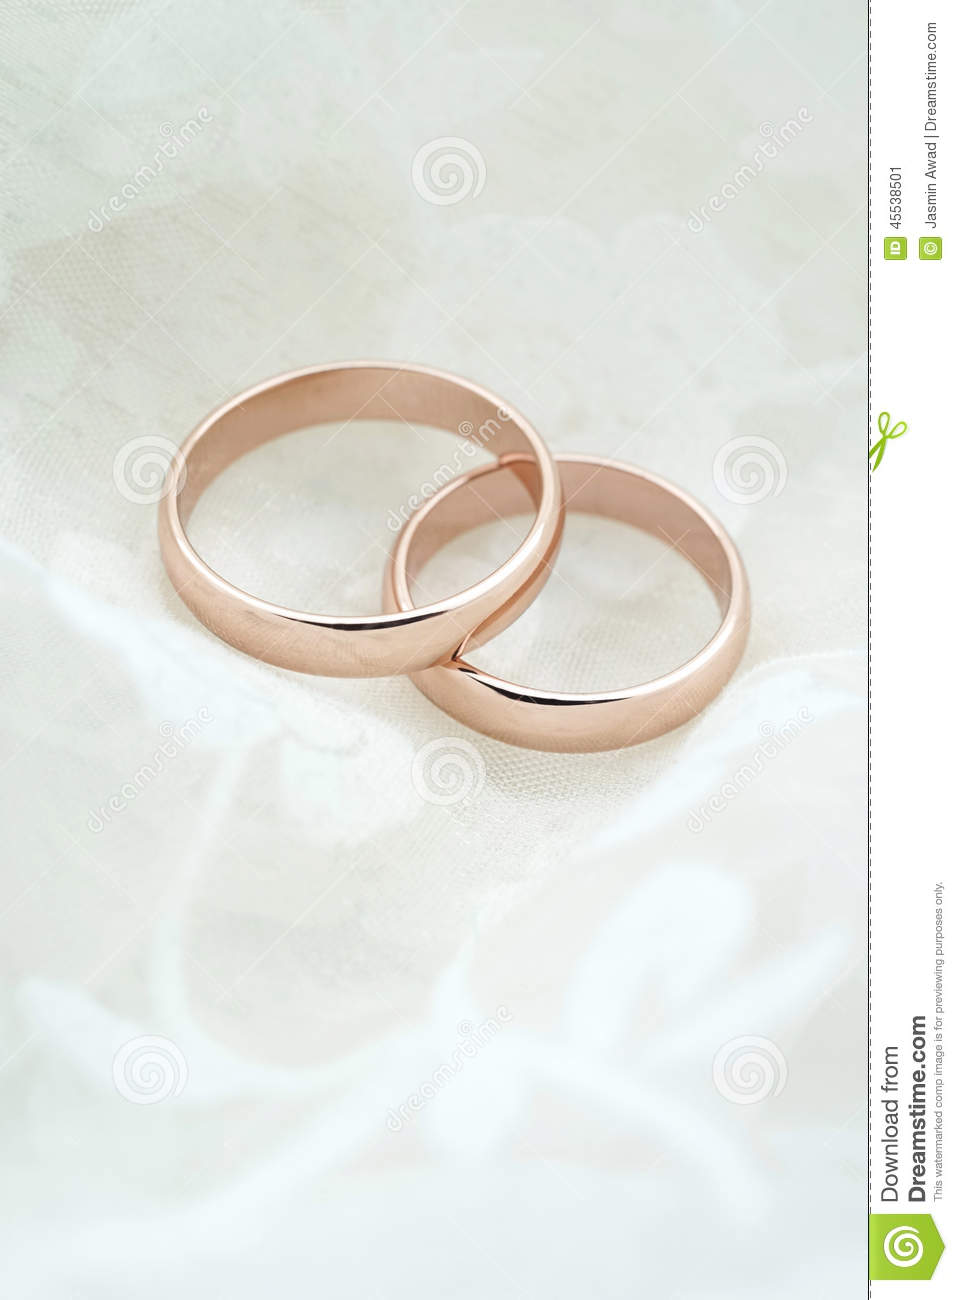 Wedding Invite With Rose Gold Rings Stock Photo Image